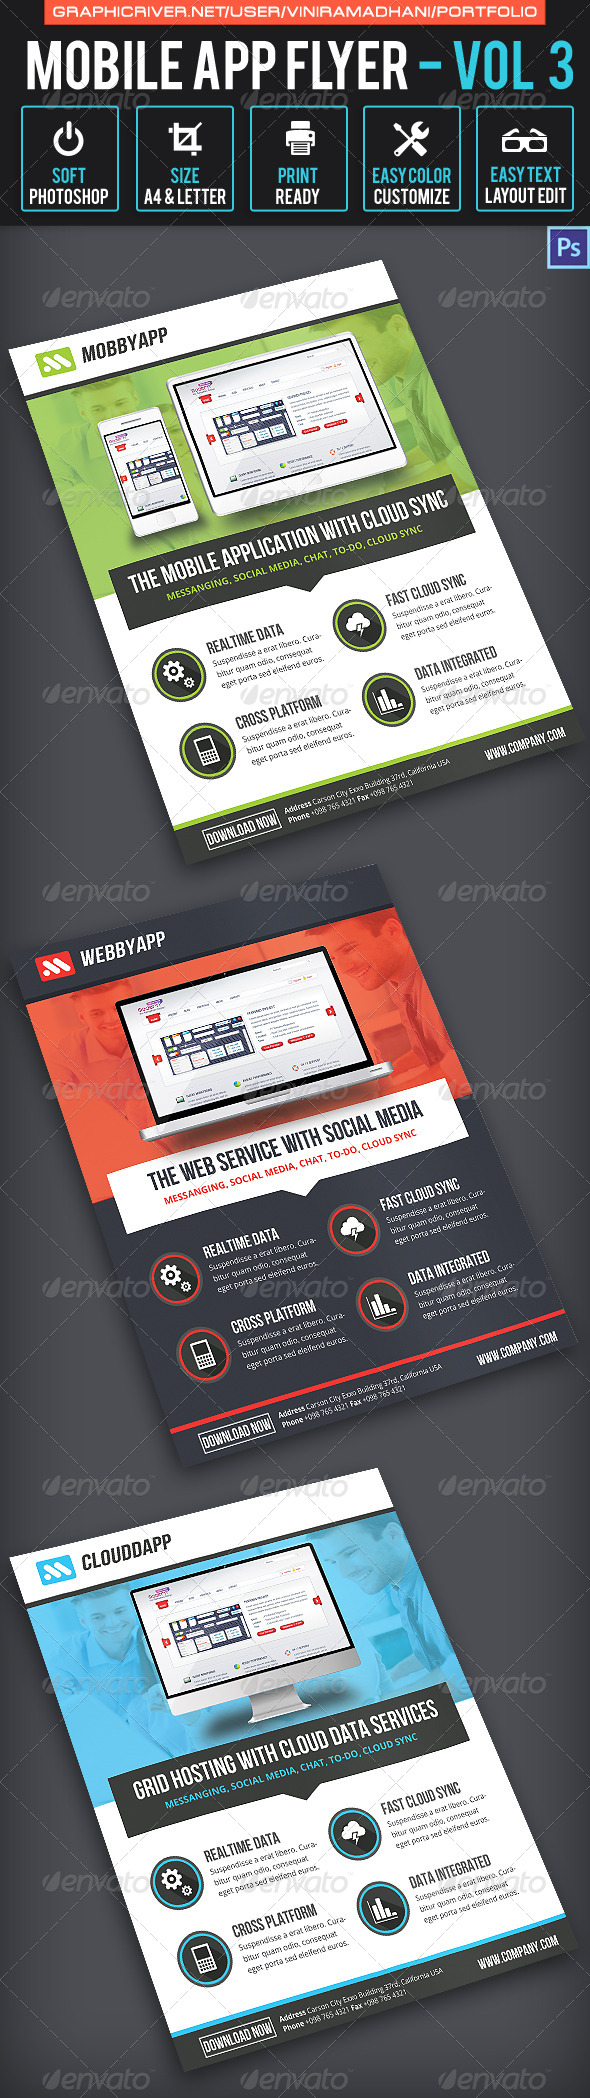 Mobile App Flyer | Volume 3 - Corporate Flyers